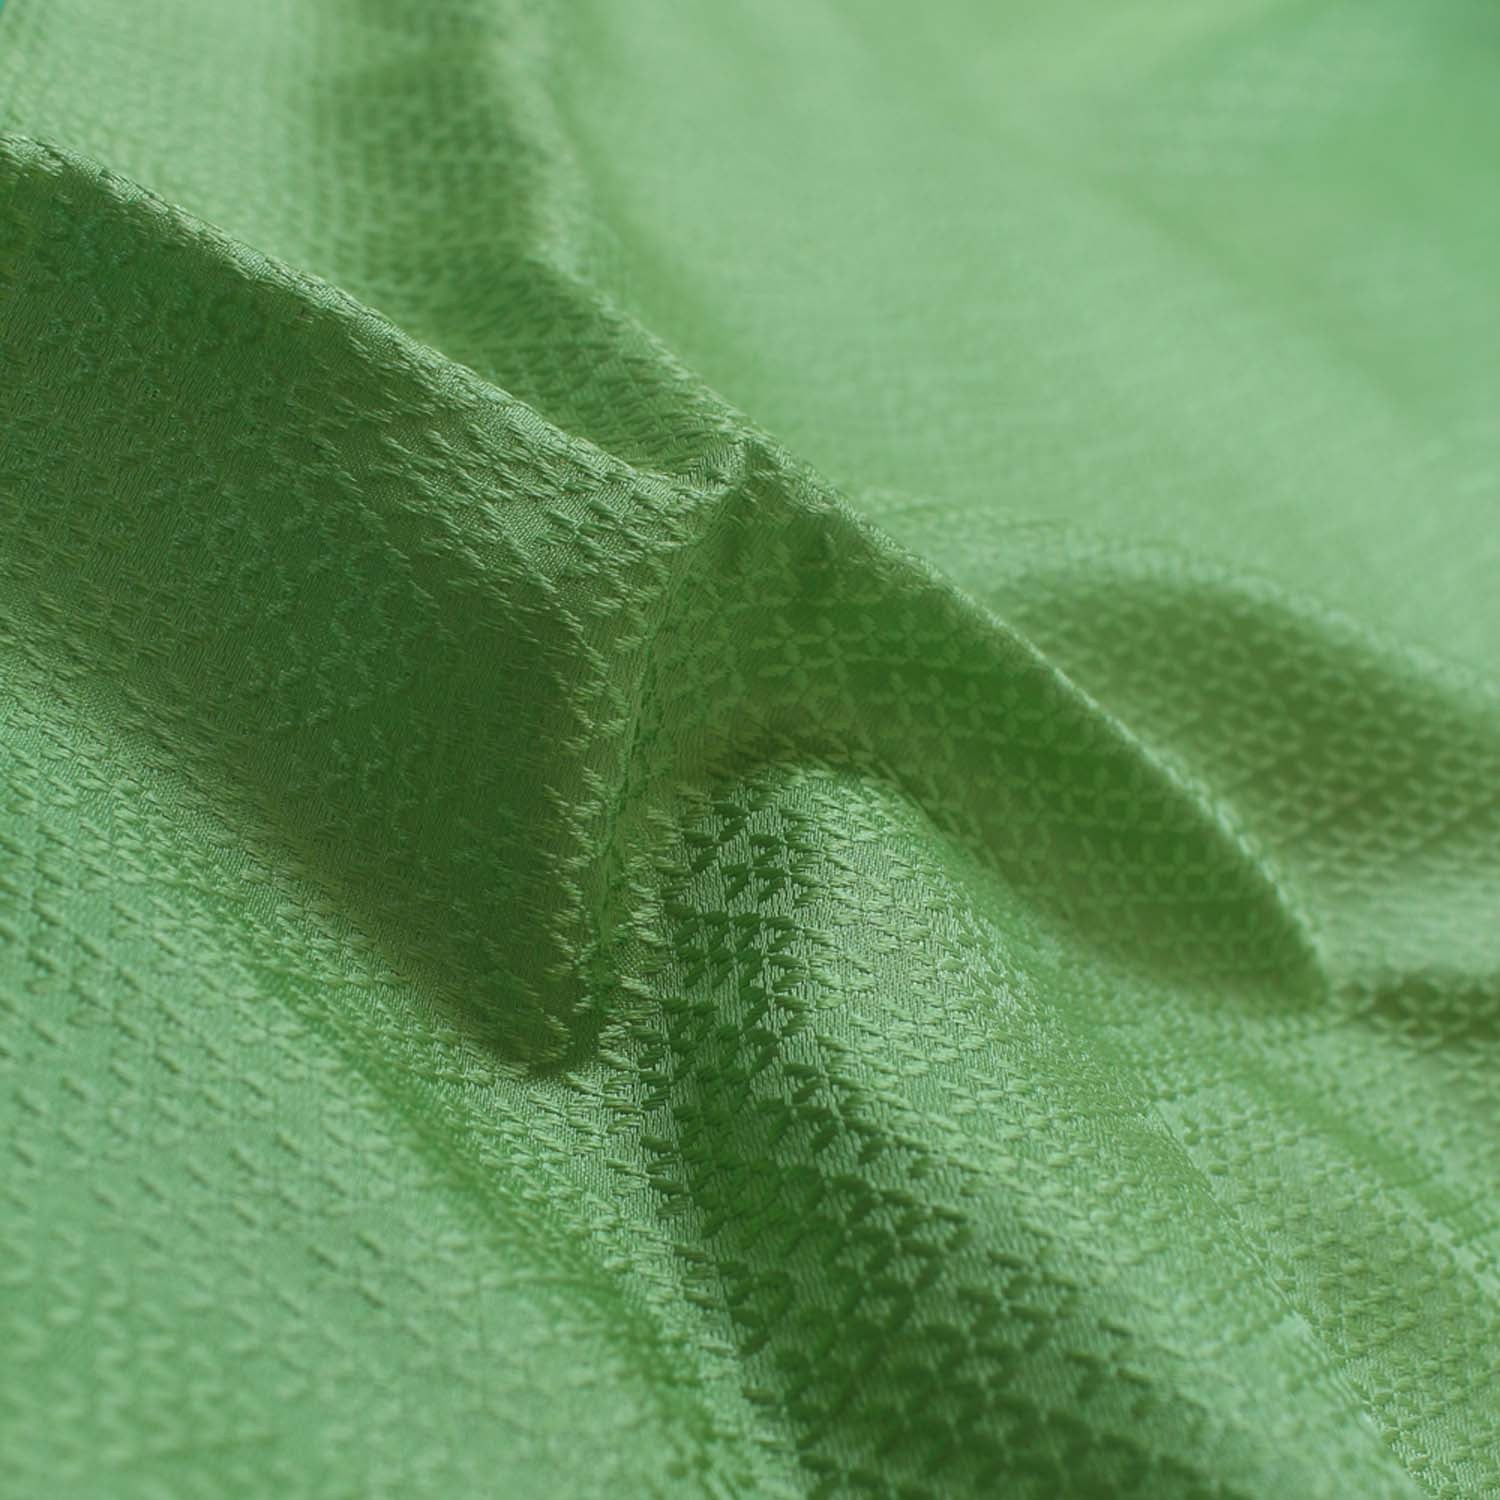 Pista Green Pure Satin Silk Banarasi Handloom Saree - Tilfi - 4